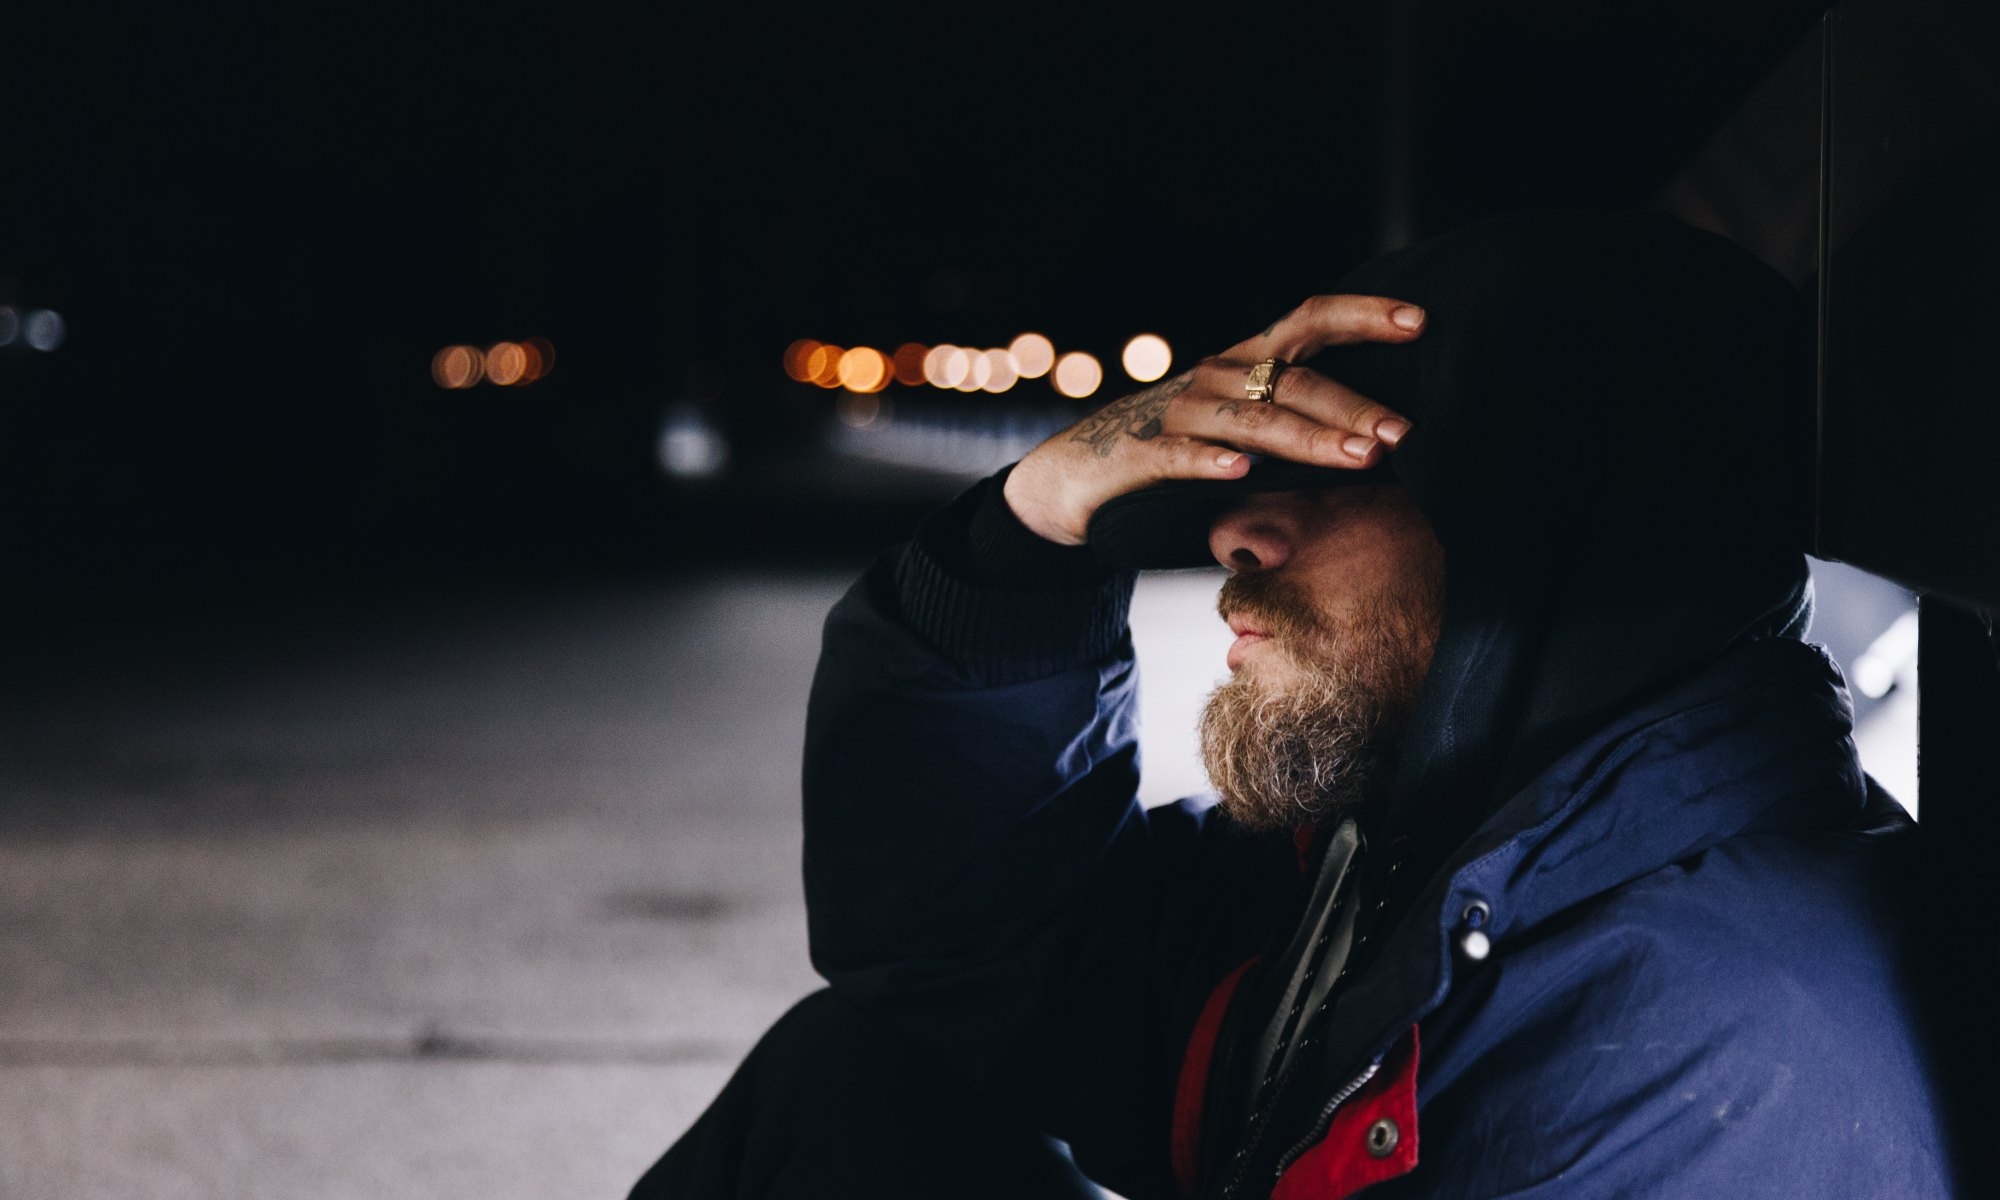 Depressed man sitting on street with hand on face